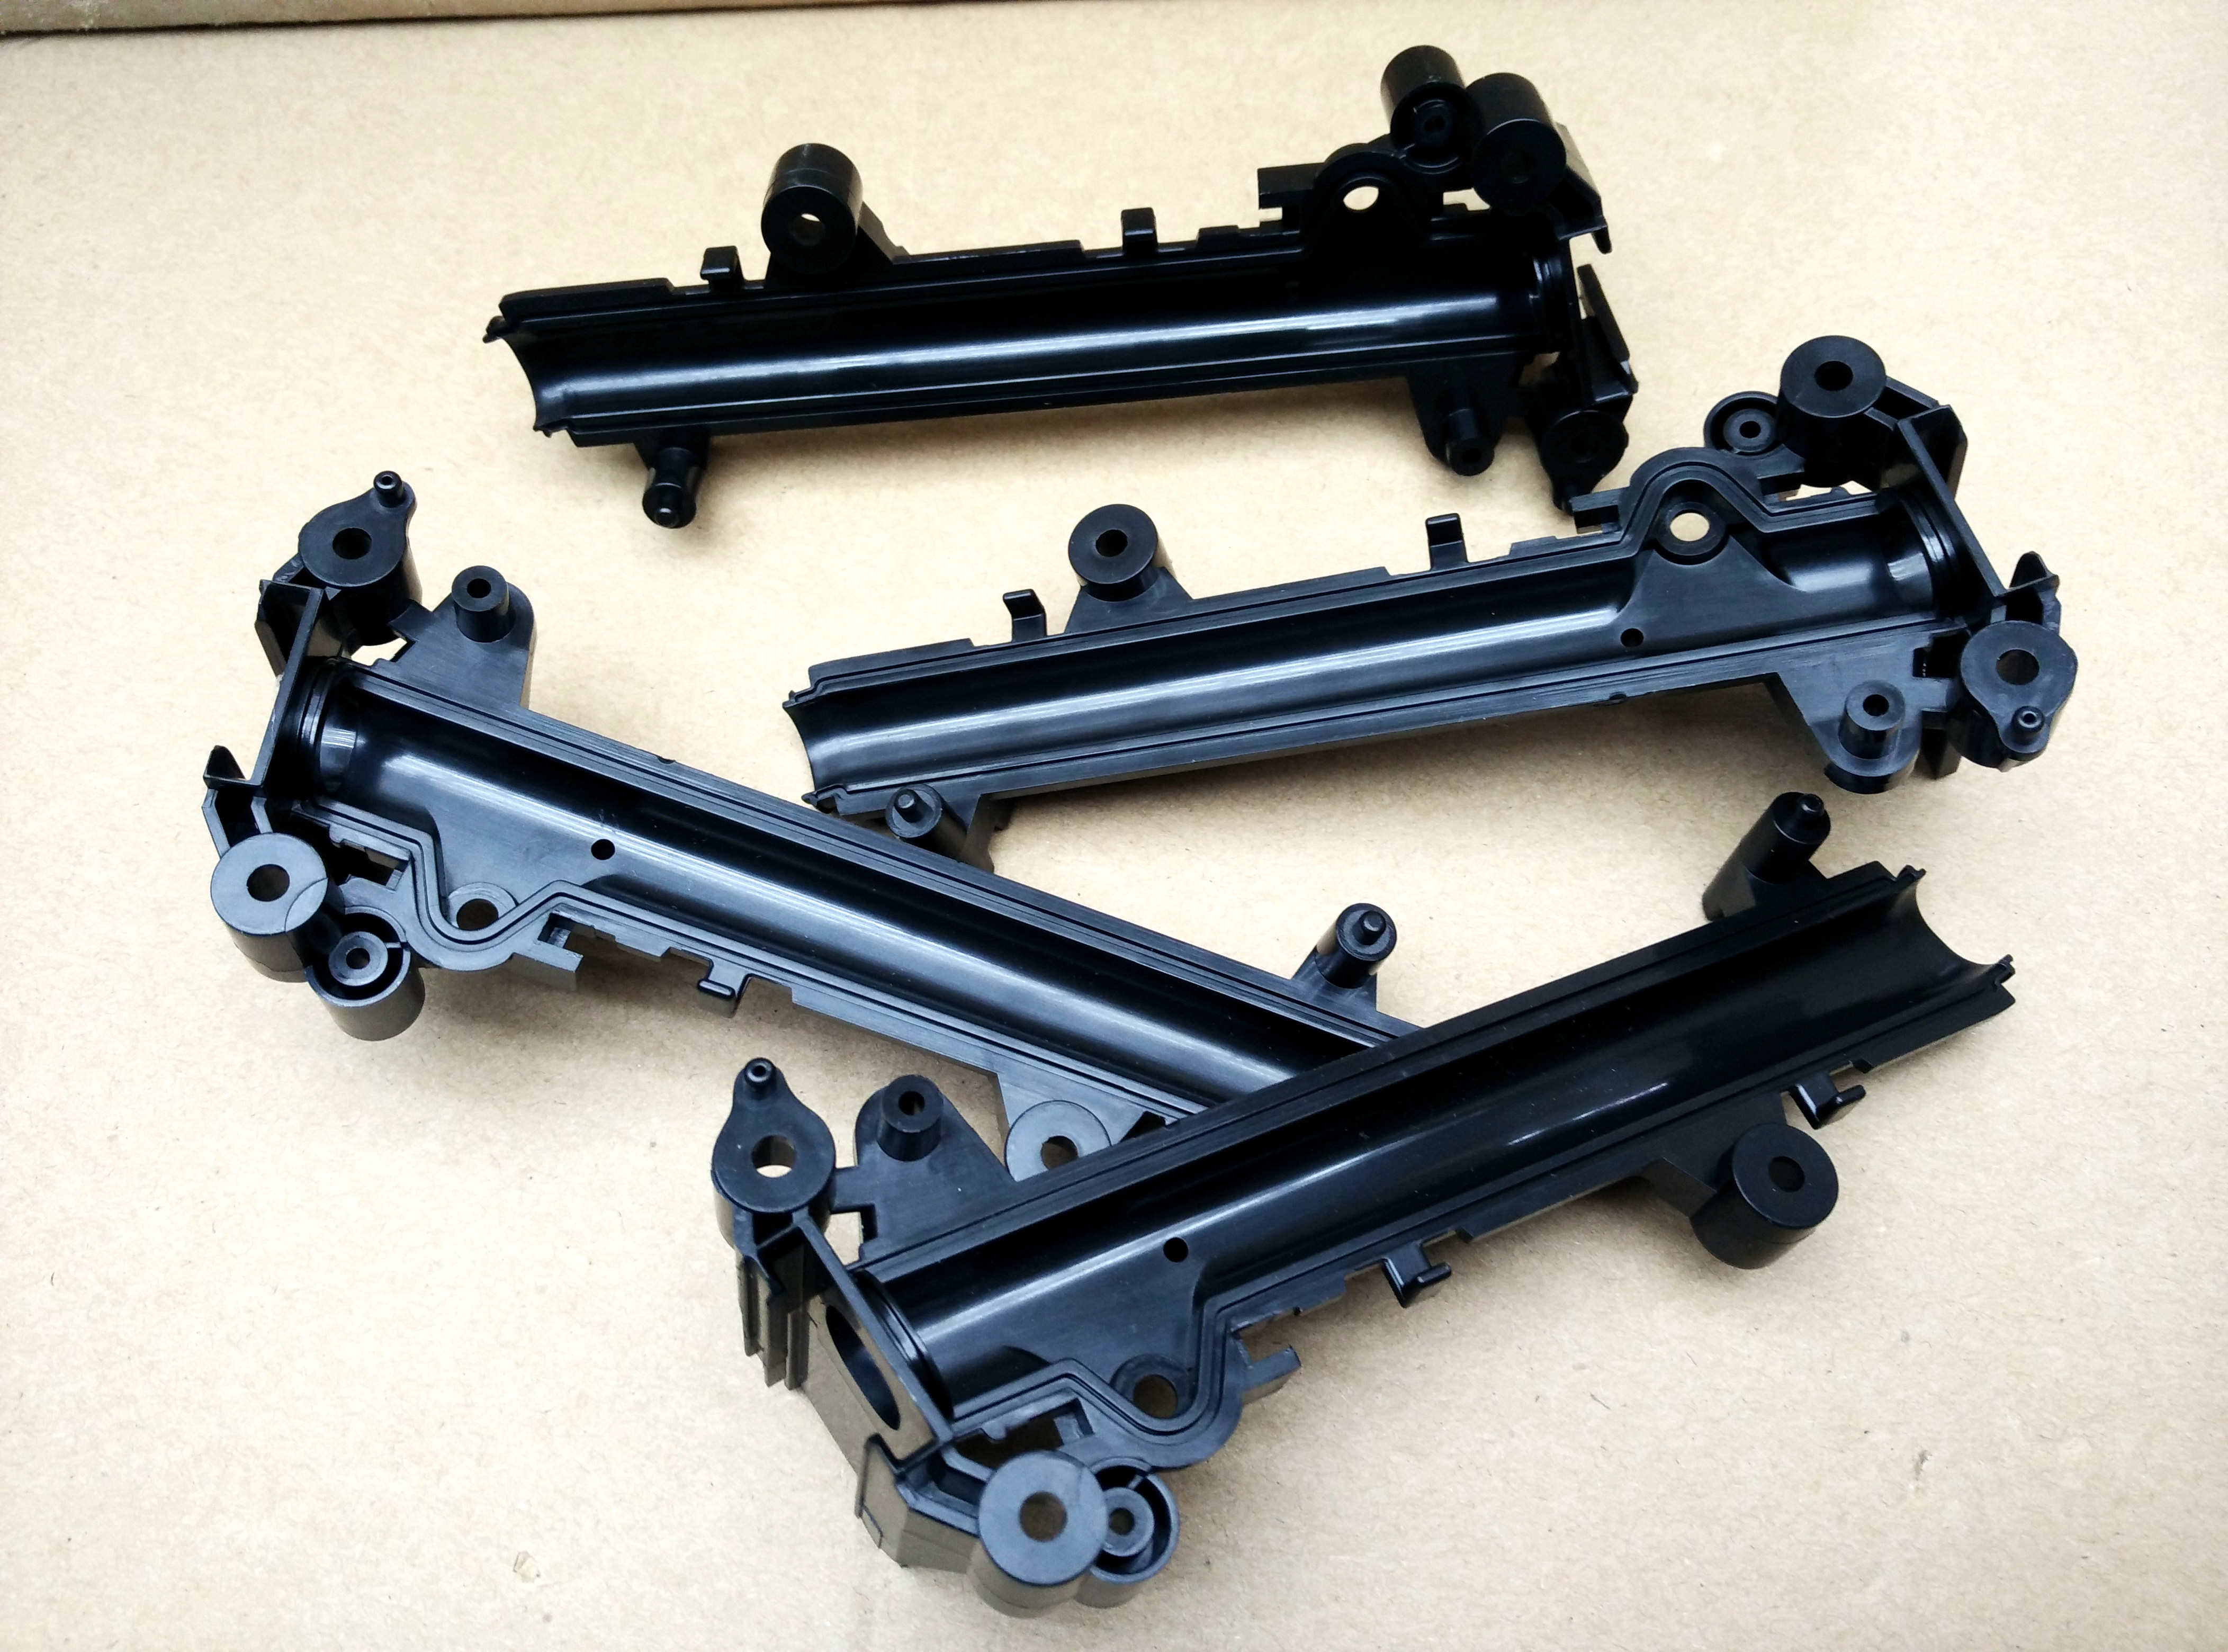 Plastic moulding, injection molded plastic,plastic molding